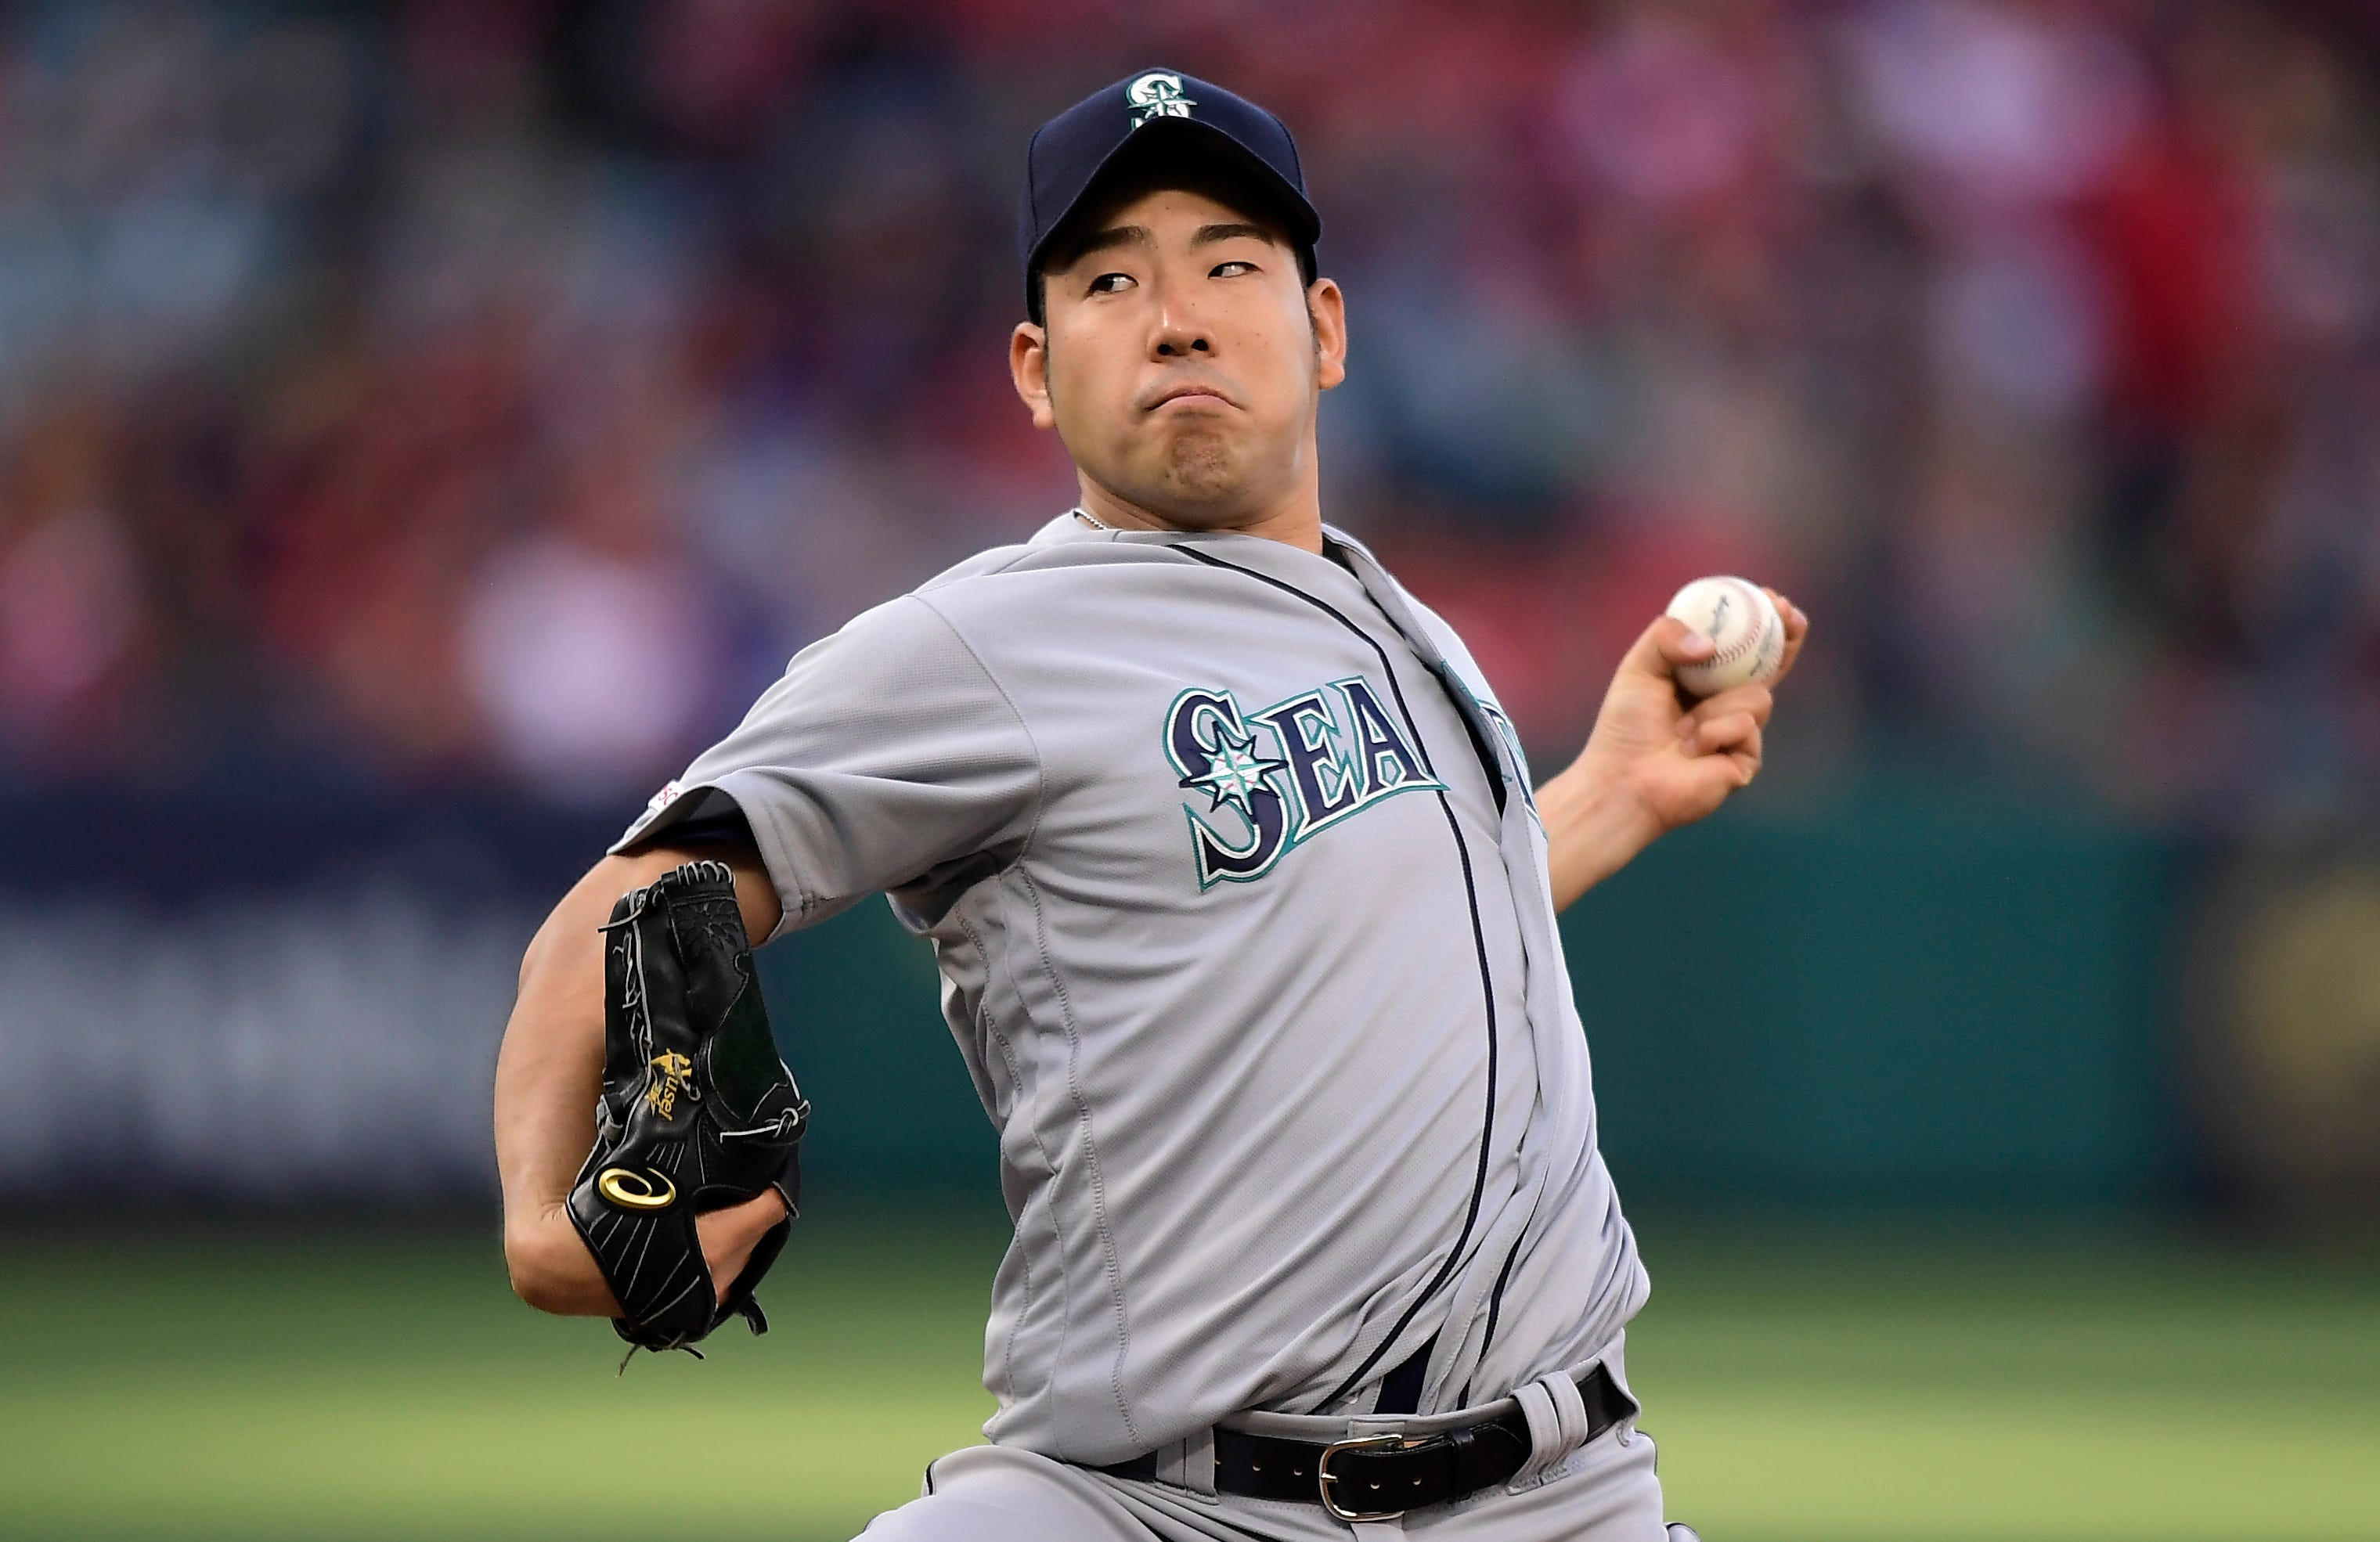 Pujols passes Ruth on RBI list, but Mariners beat Angels 6-5